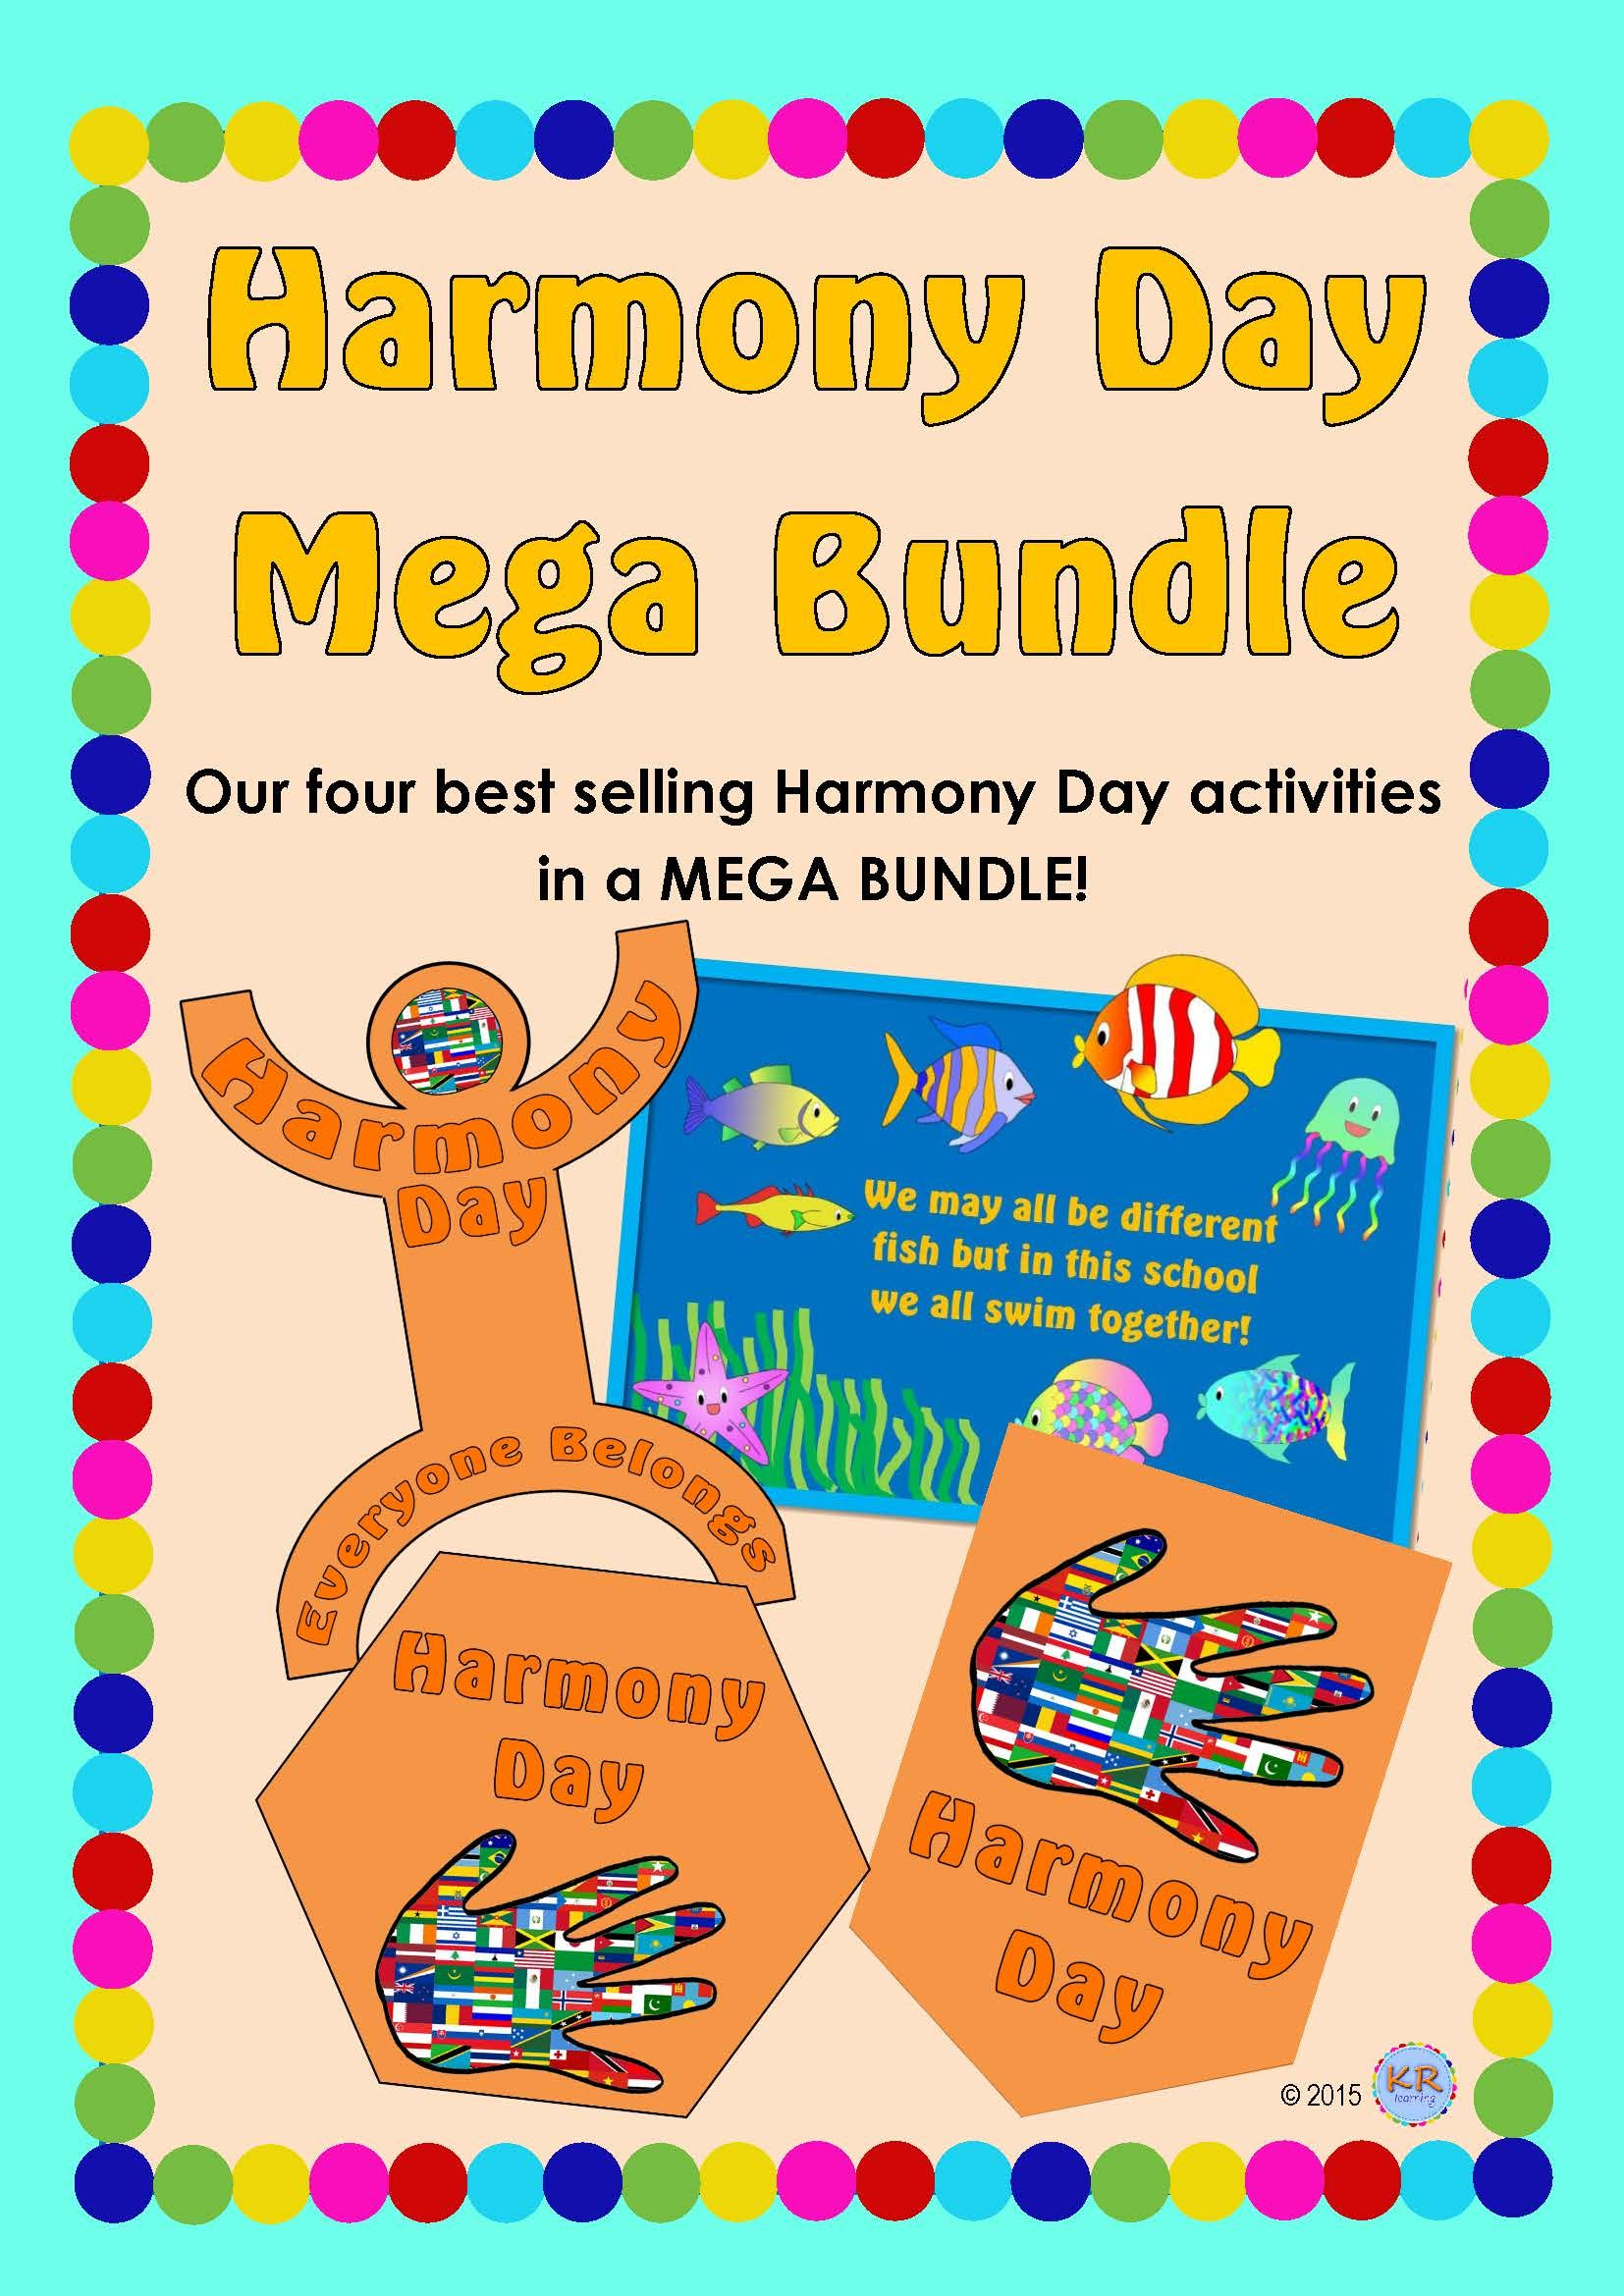 Harmony Day Mega Bundle Combining The Best Selling Harmony